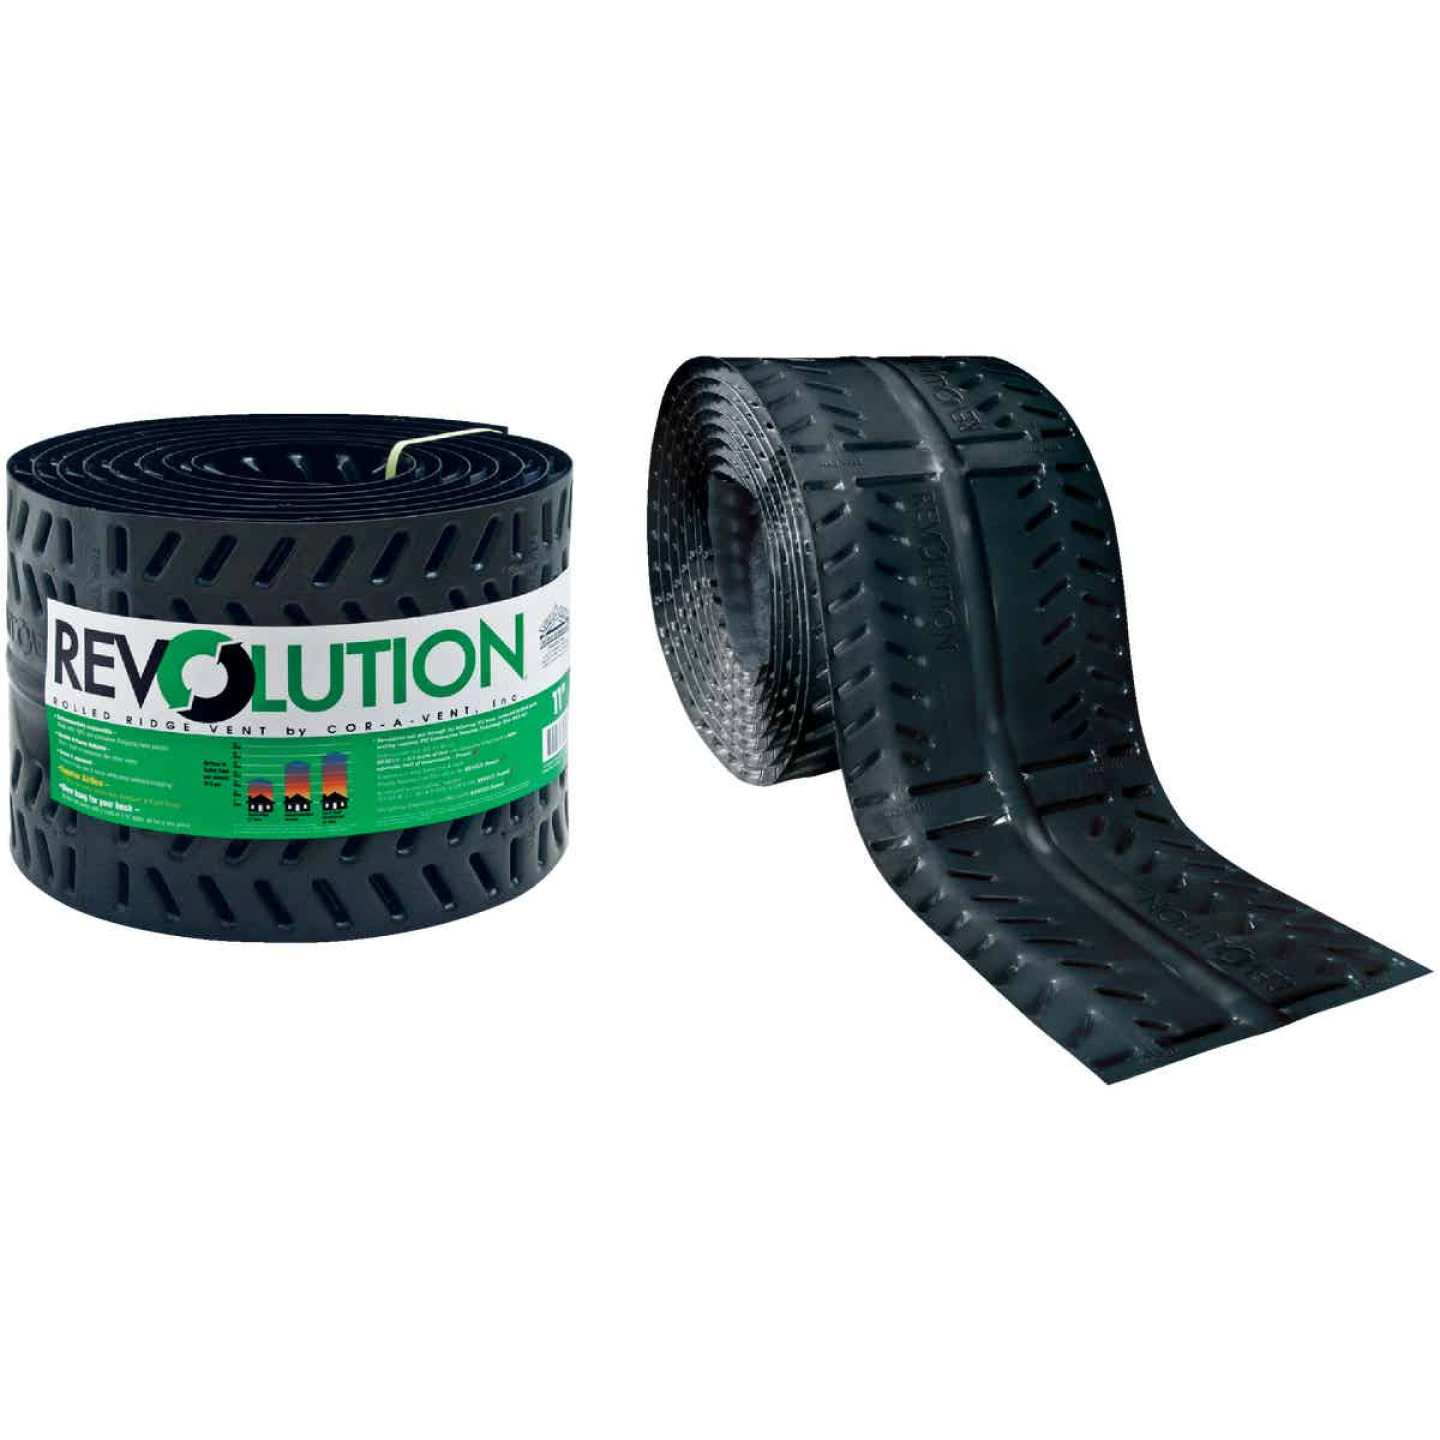 Cor-A-Vent Revolution 11 In. x 20 Ft. Rolled Ridge Vent Image 1